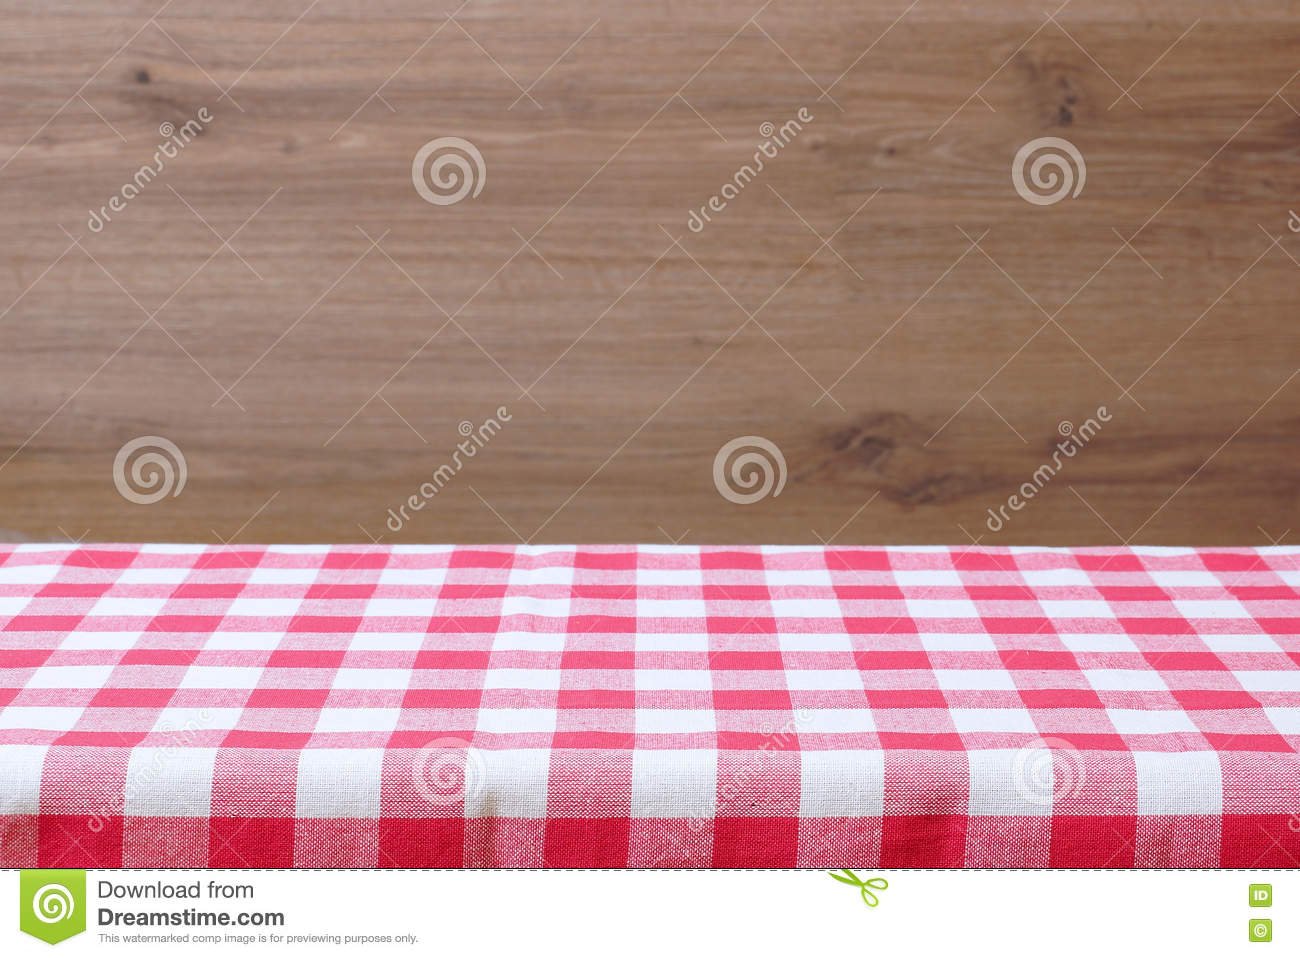 une table vide avec une nappe carreaux rouge fond en bois image stock image du bois. Black Bedroom Furniture Sets. Home Design Ideas